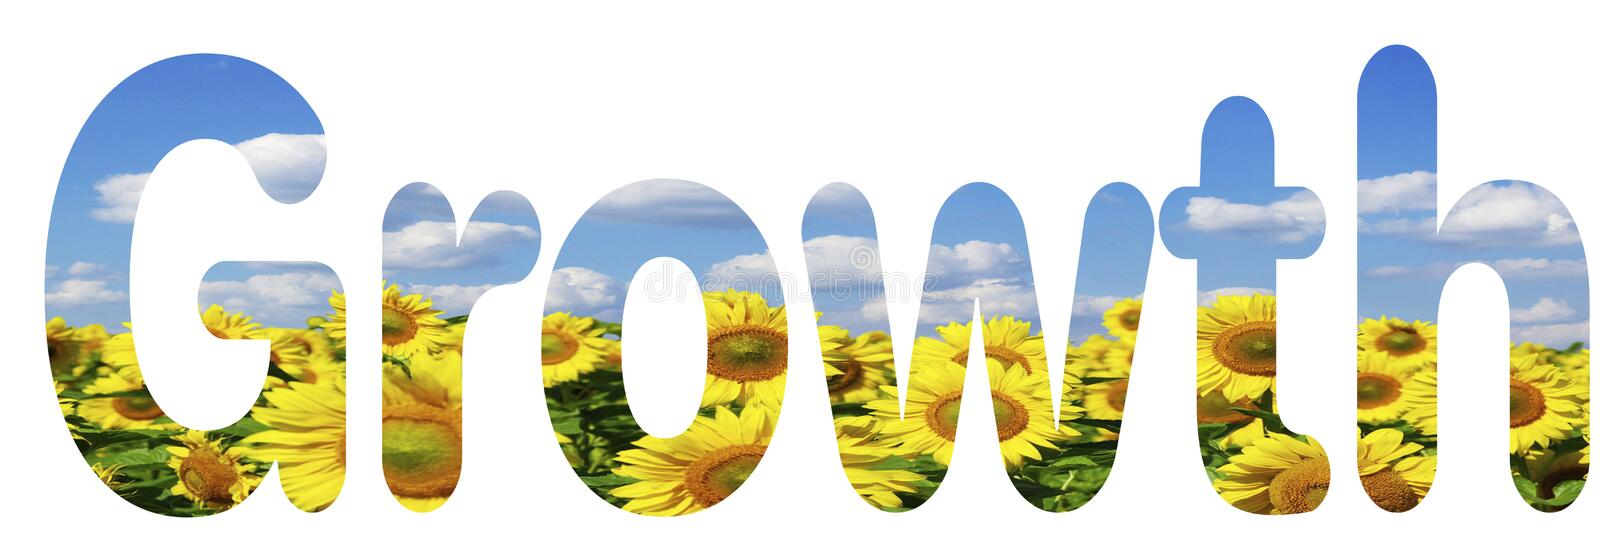 Text graphic for growth with sunflowers. Text graphic showing the word growth with sunflowers in the background and blue skies. Can be used for business royalty free stock photography